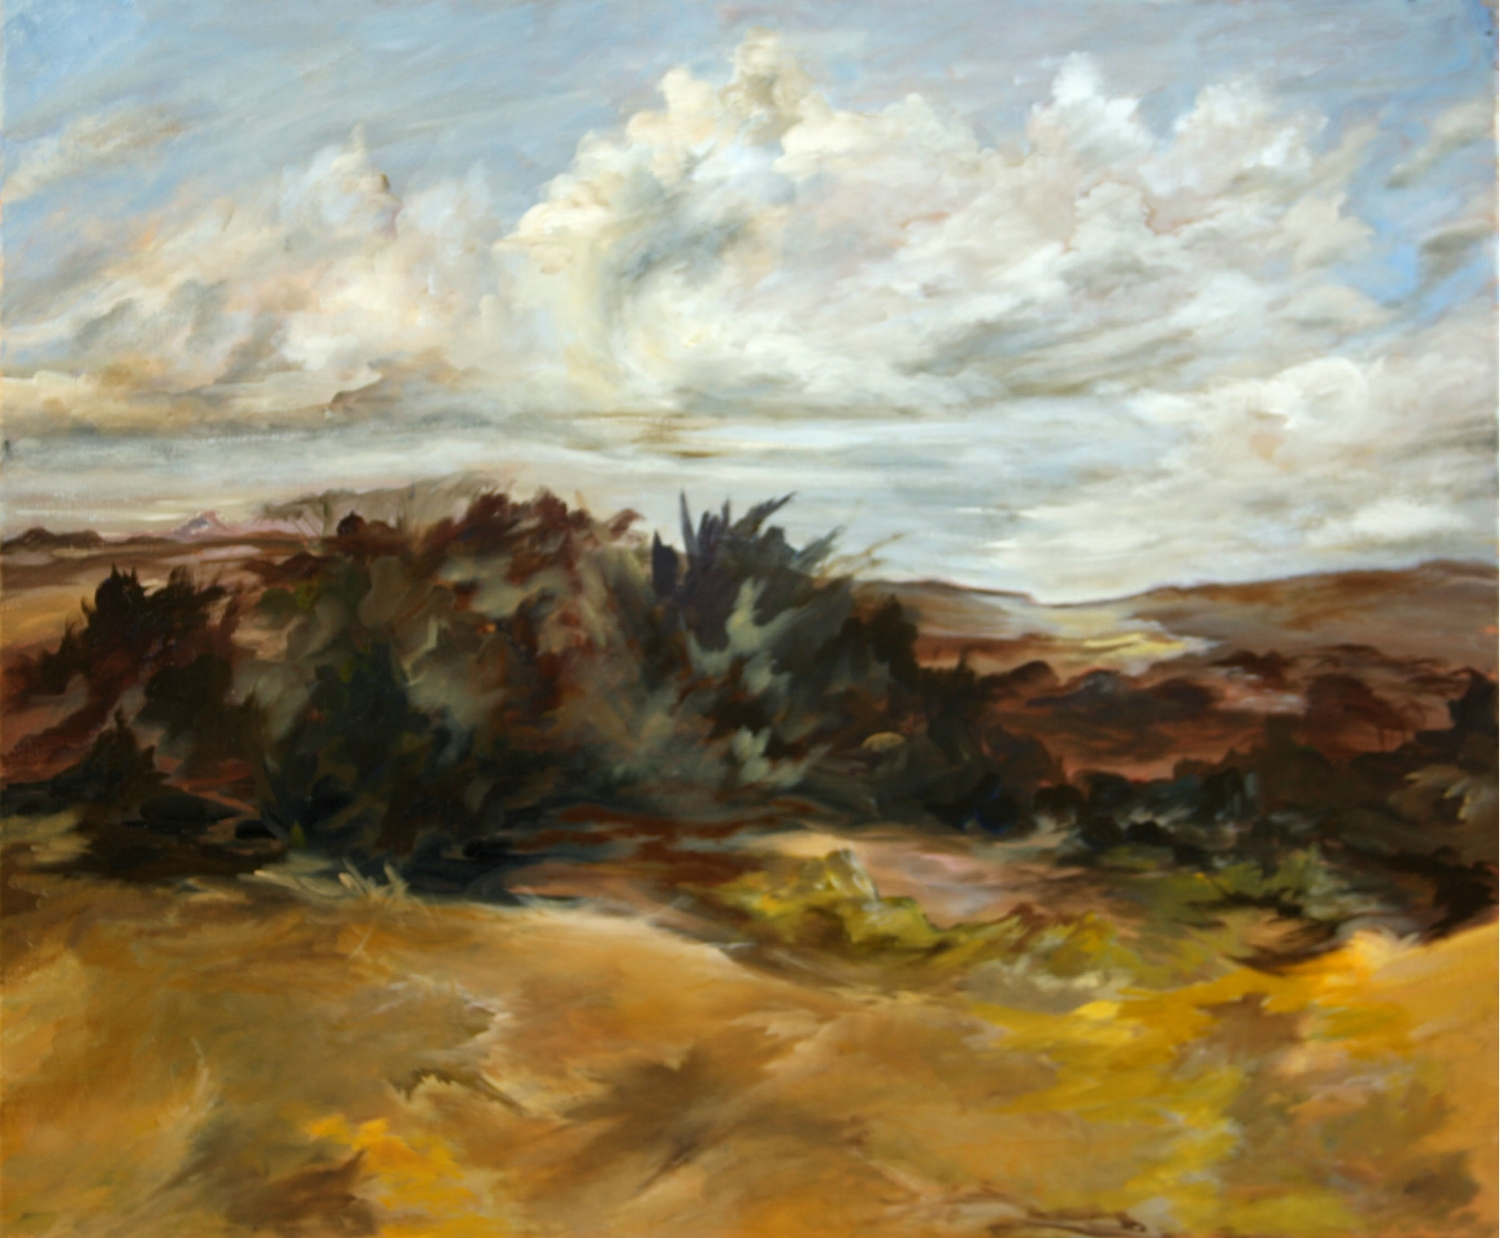 DEEP COUNTRY - SOLD